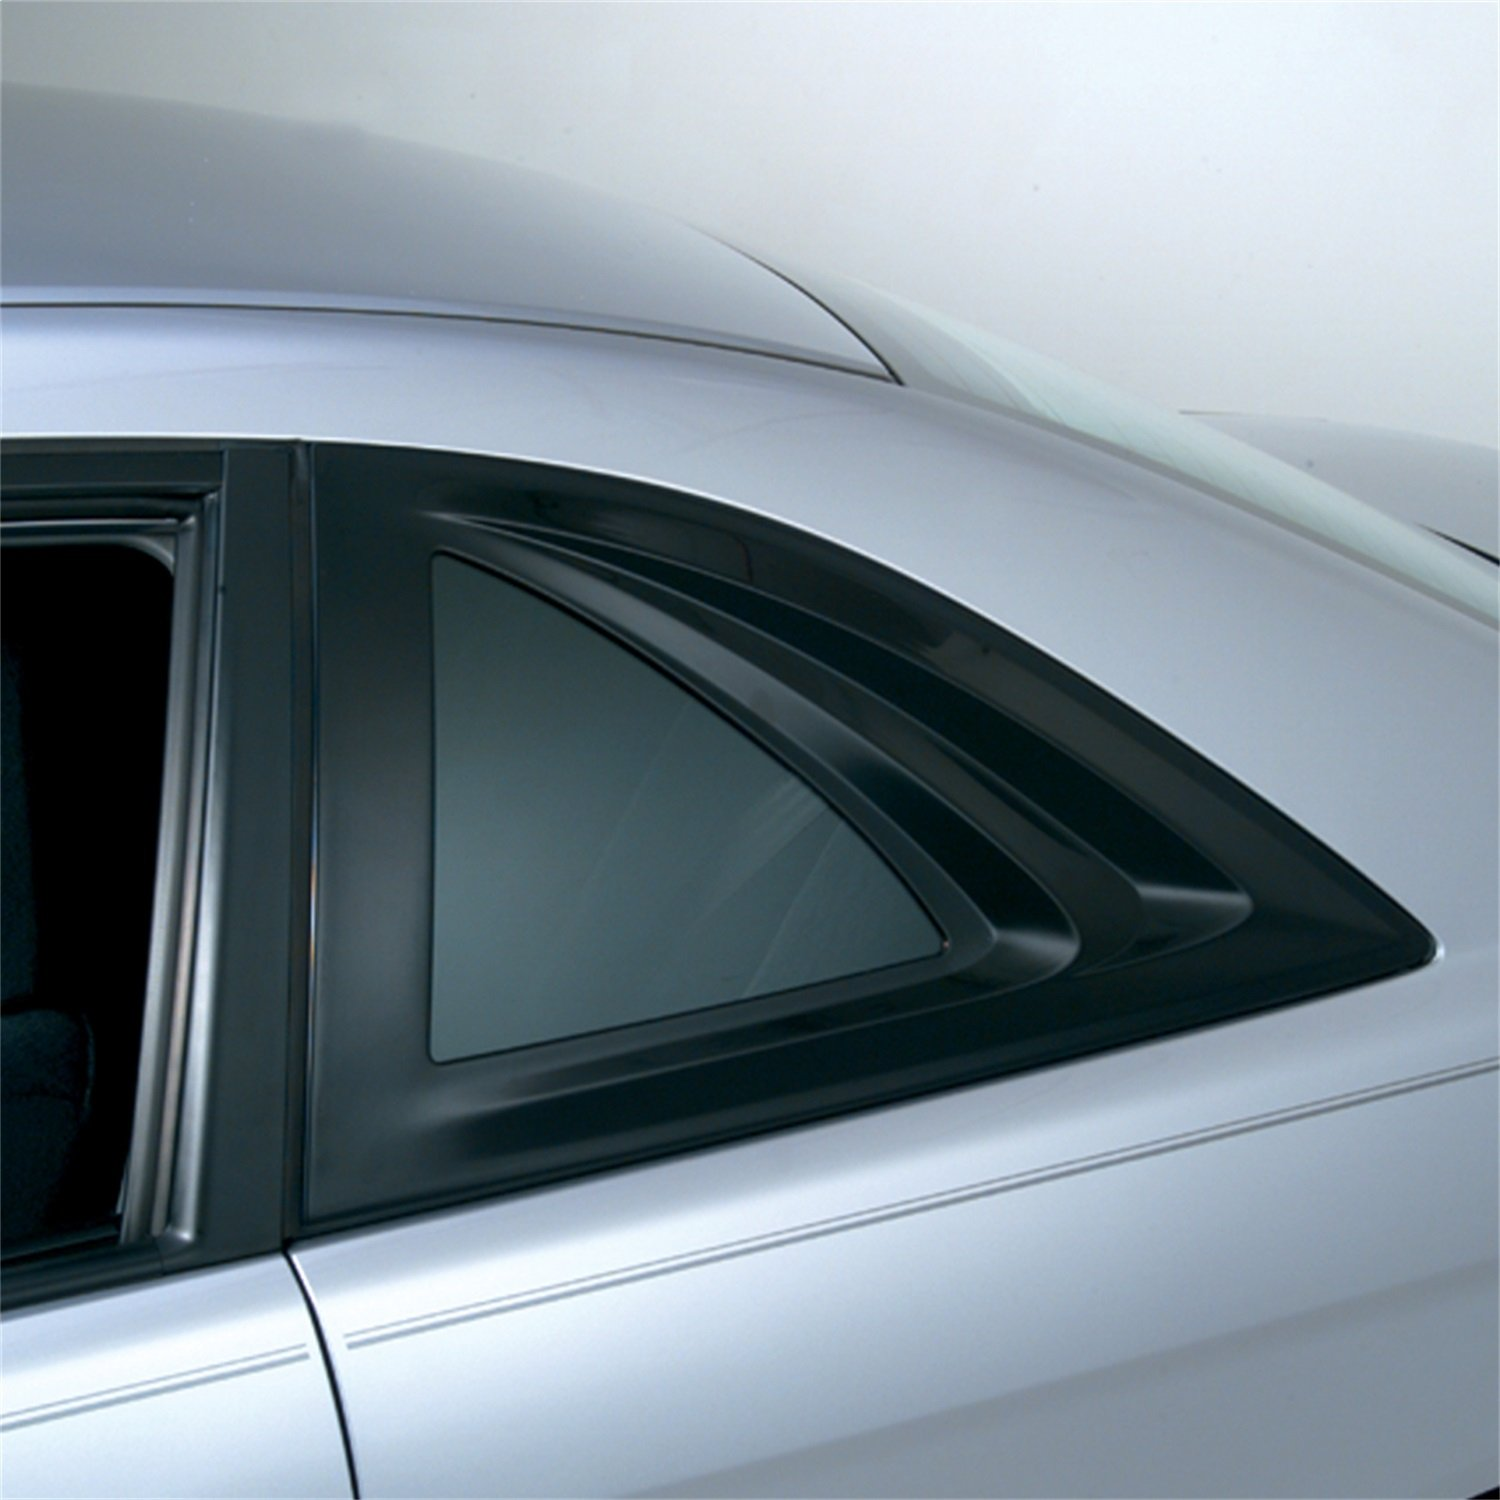 Auto Ventshade 97903 Aeroshade Louvered Window Covers for 2005-2009 Ford Mustang